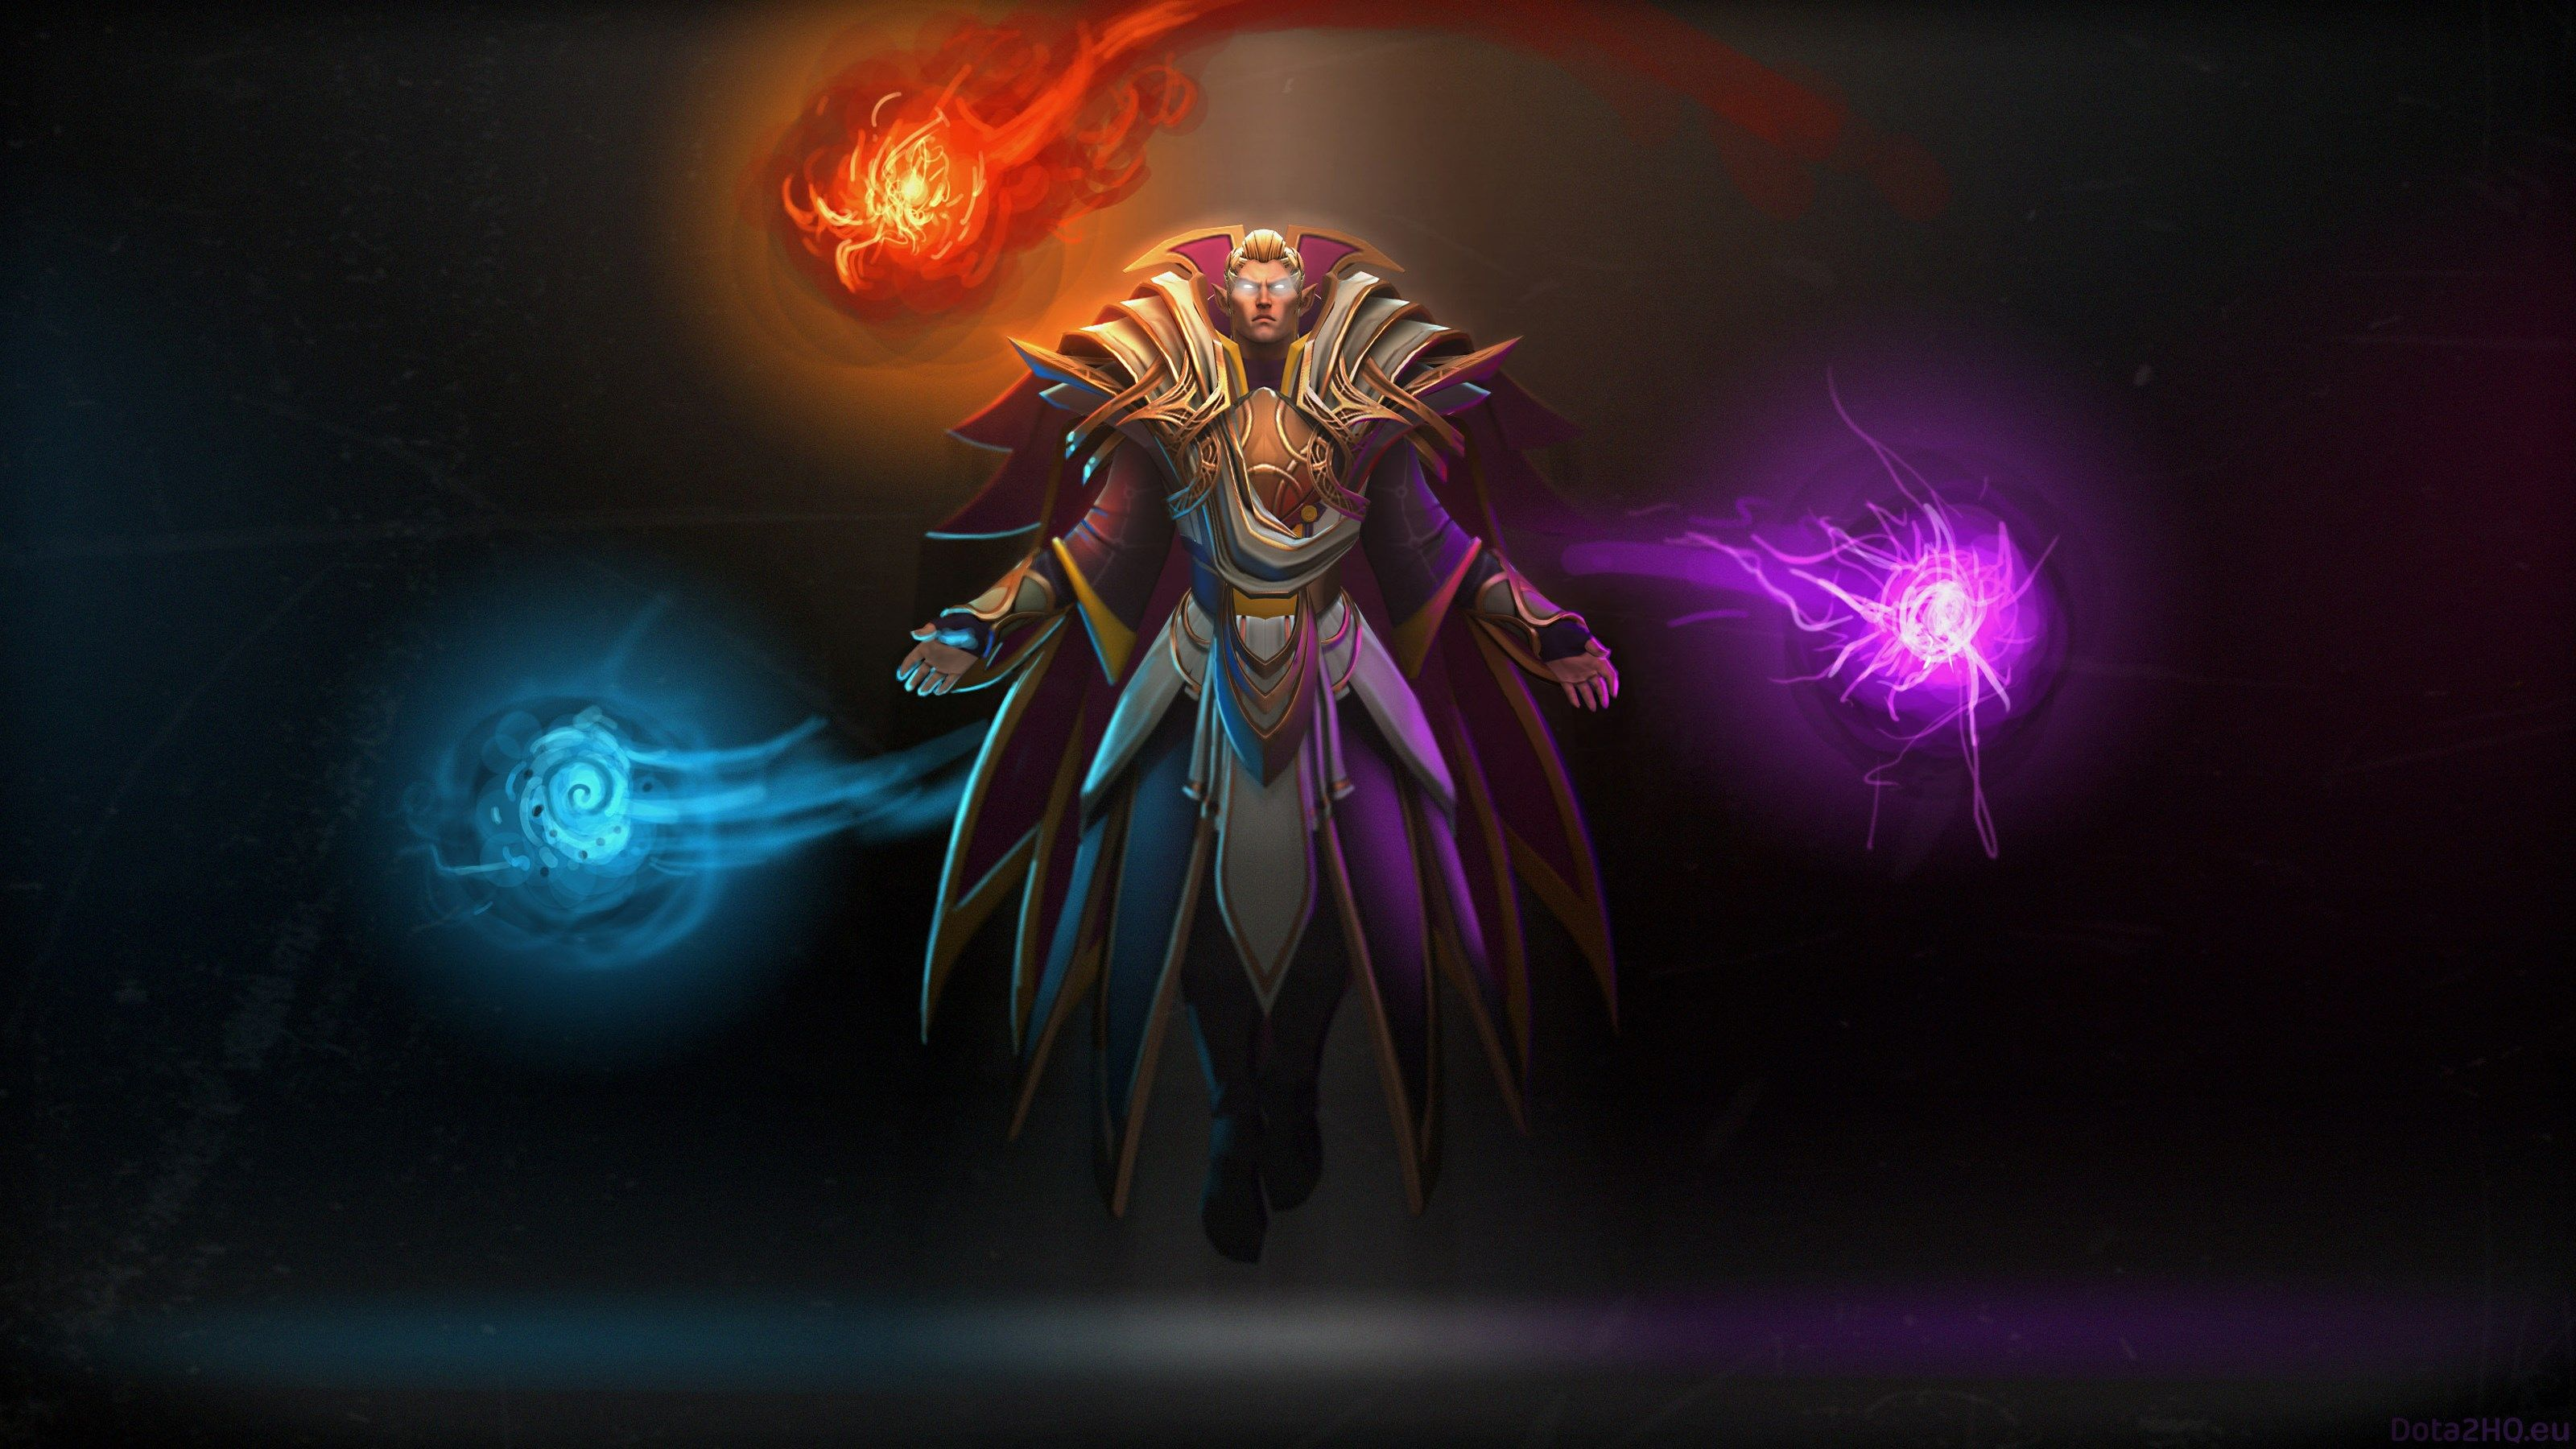 3200x1800 Invoker Dota 2 Wallpaper Hd